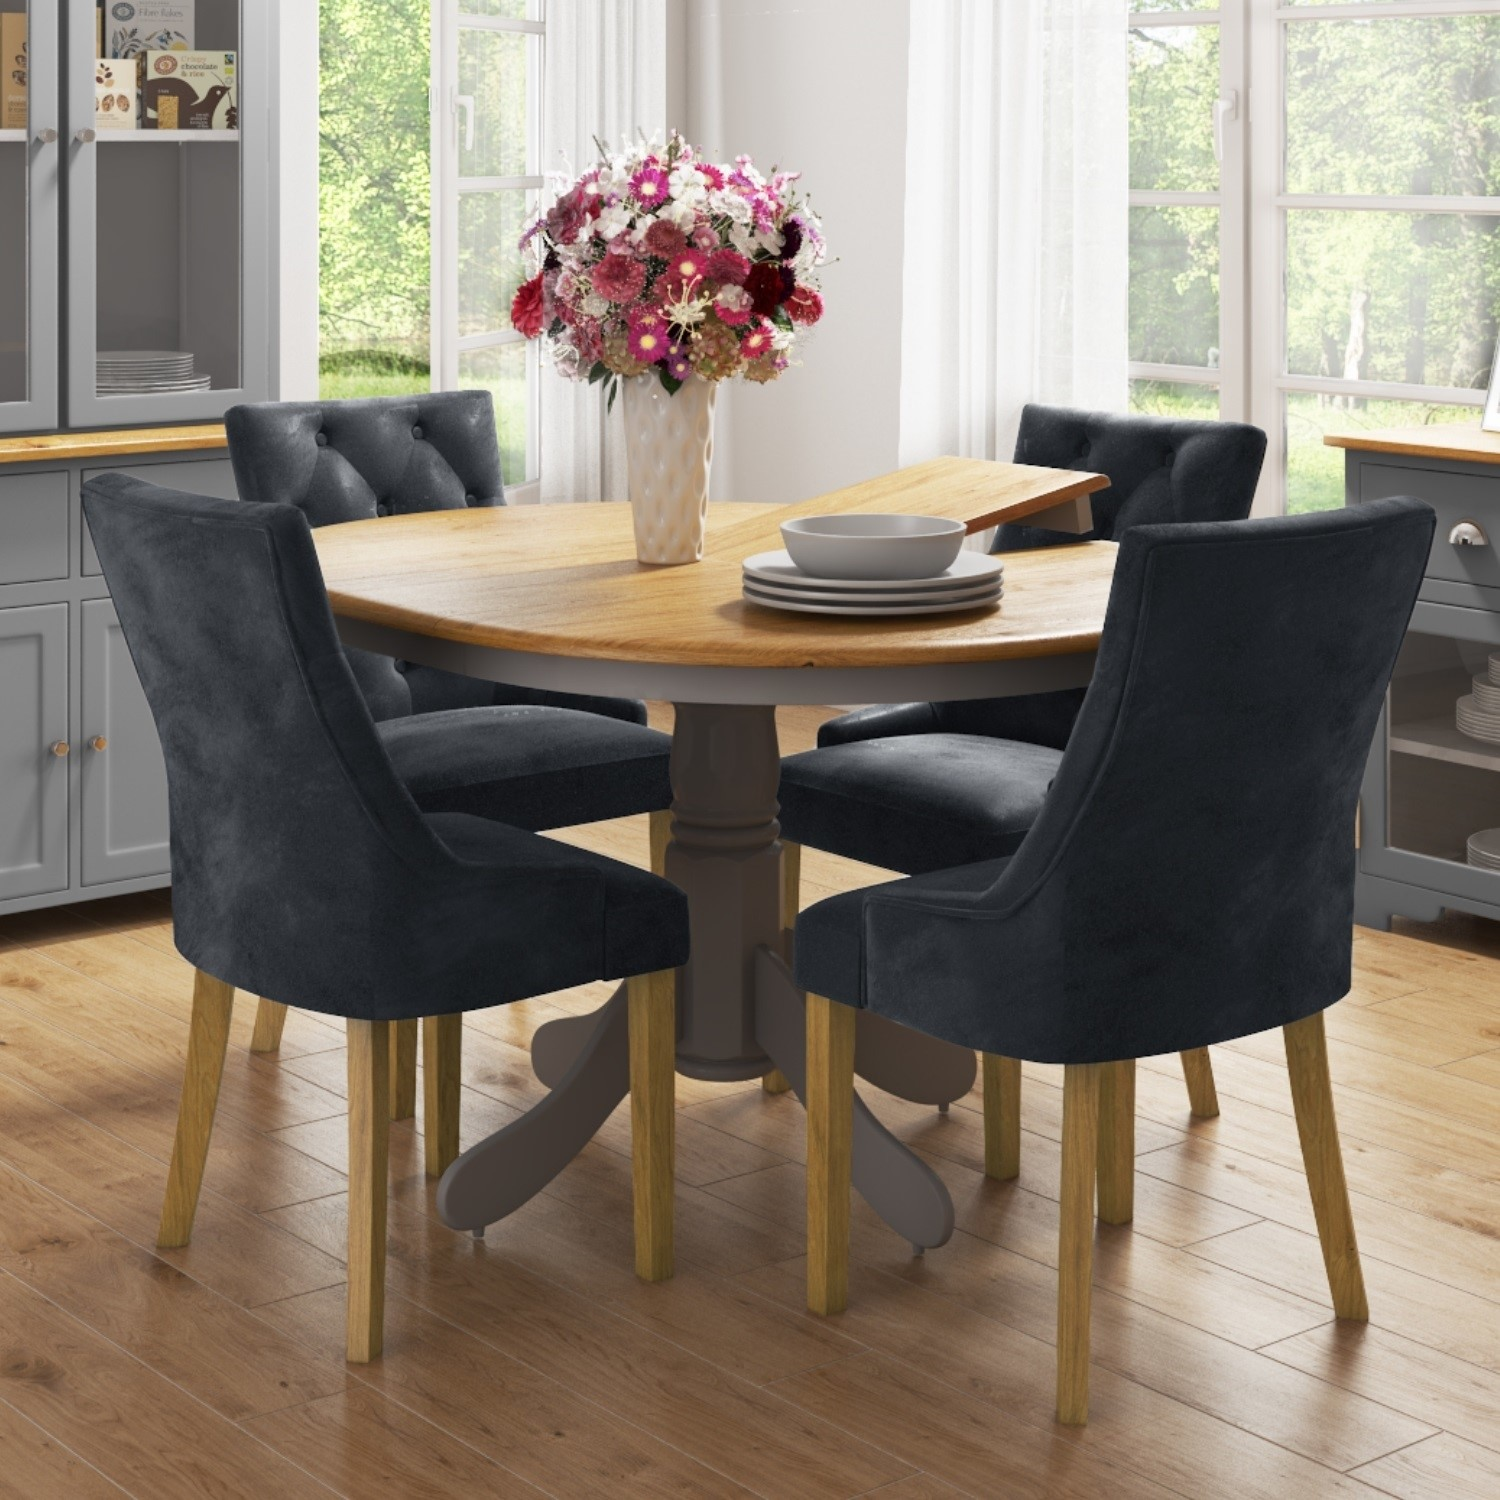 Picture of: Round Extendable Dining Table With 4 Velvet Chairs In Grey Oak Finish Rhode Island Kaylee Furniture123